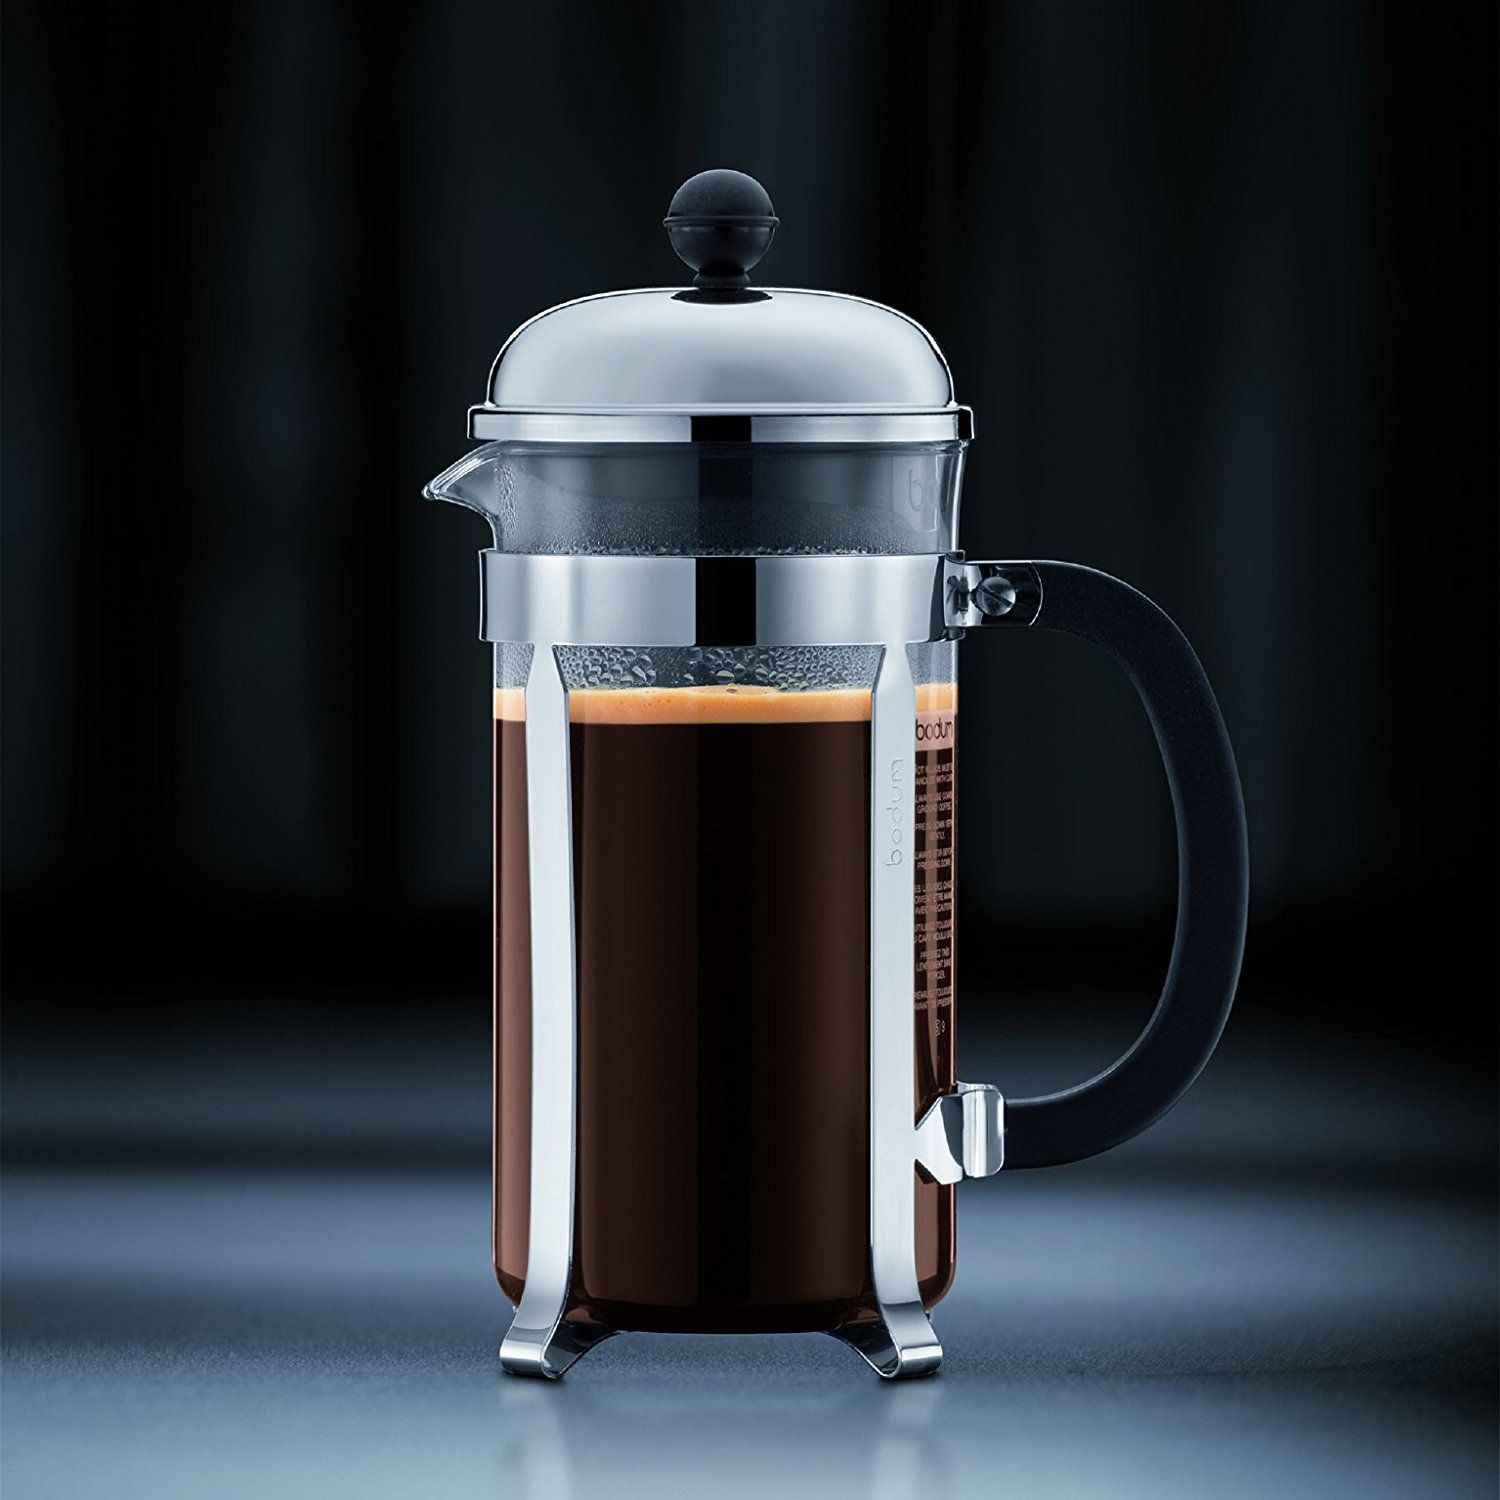 How To Use French Press Coffee Maker Recipe Video French Press Coffee Maker Coffee Press French Press Coffee